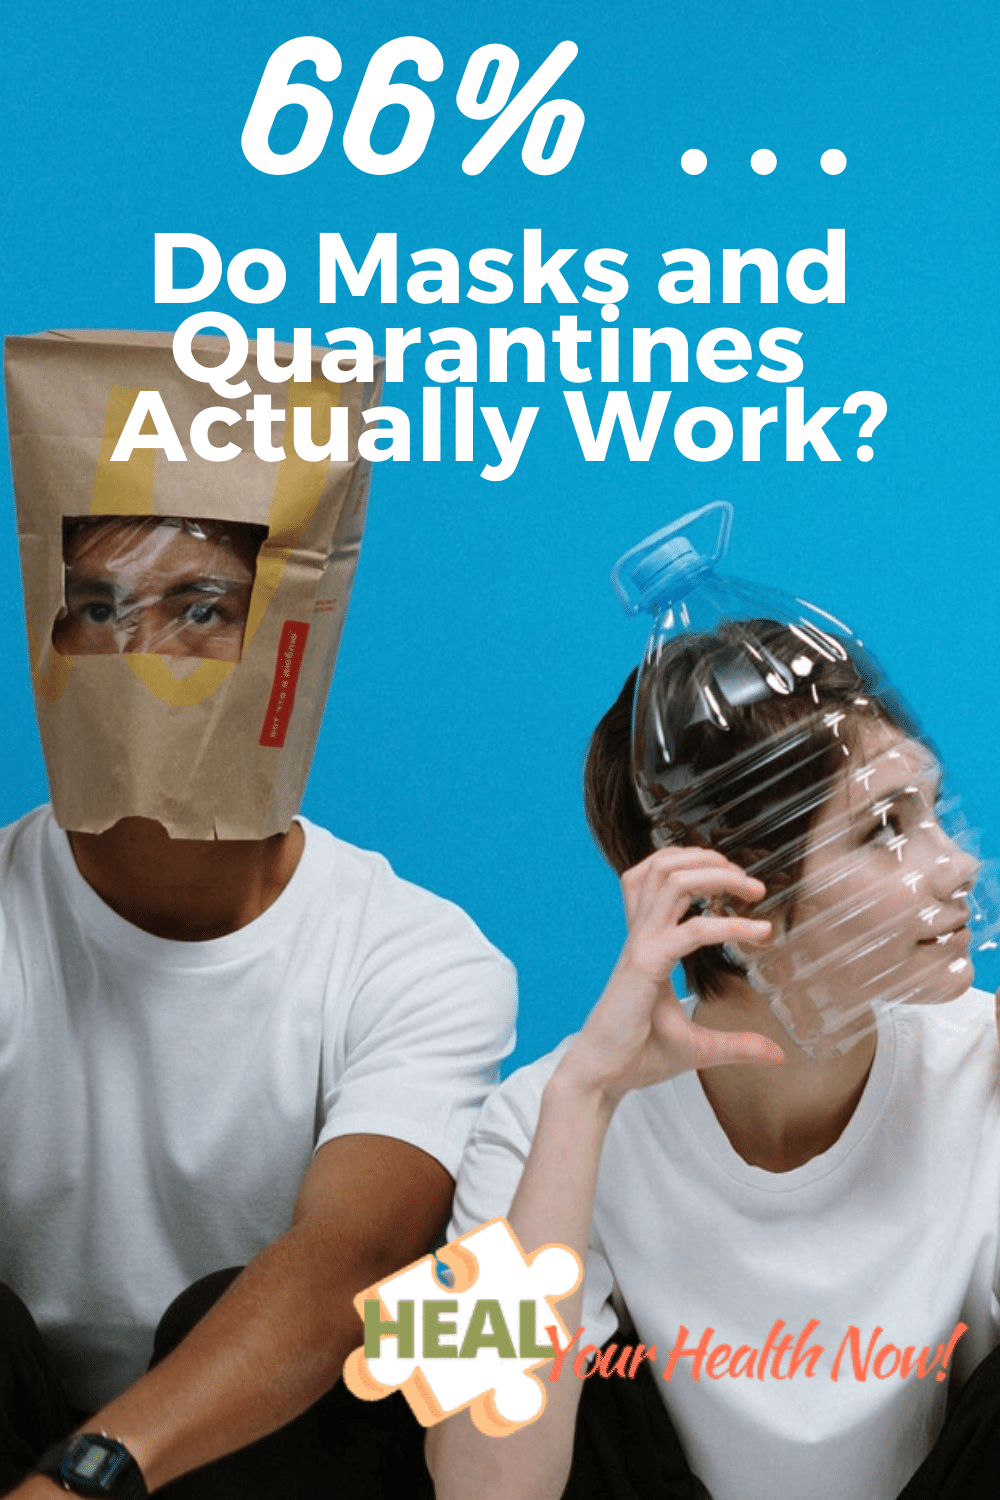 66% ... Do Masks and Quarantines Actually Work?